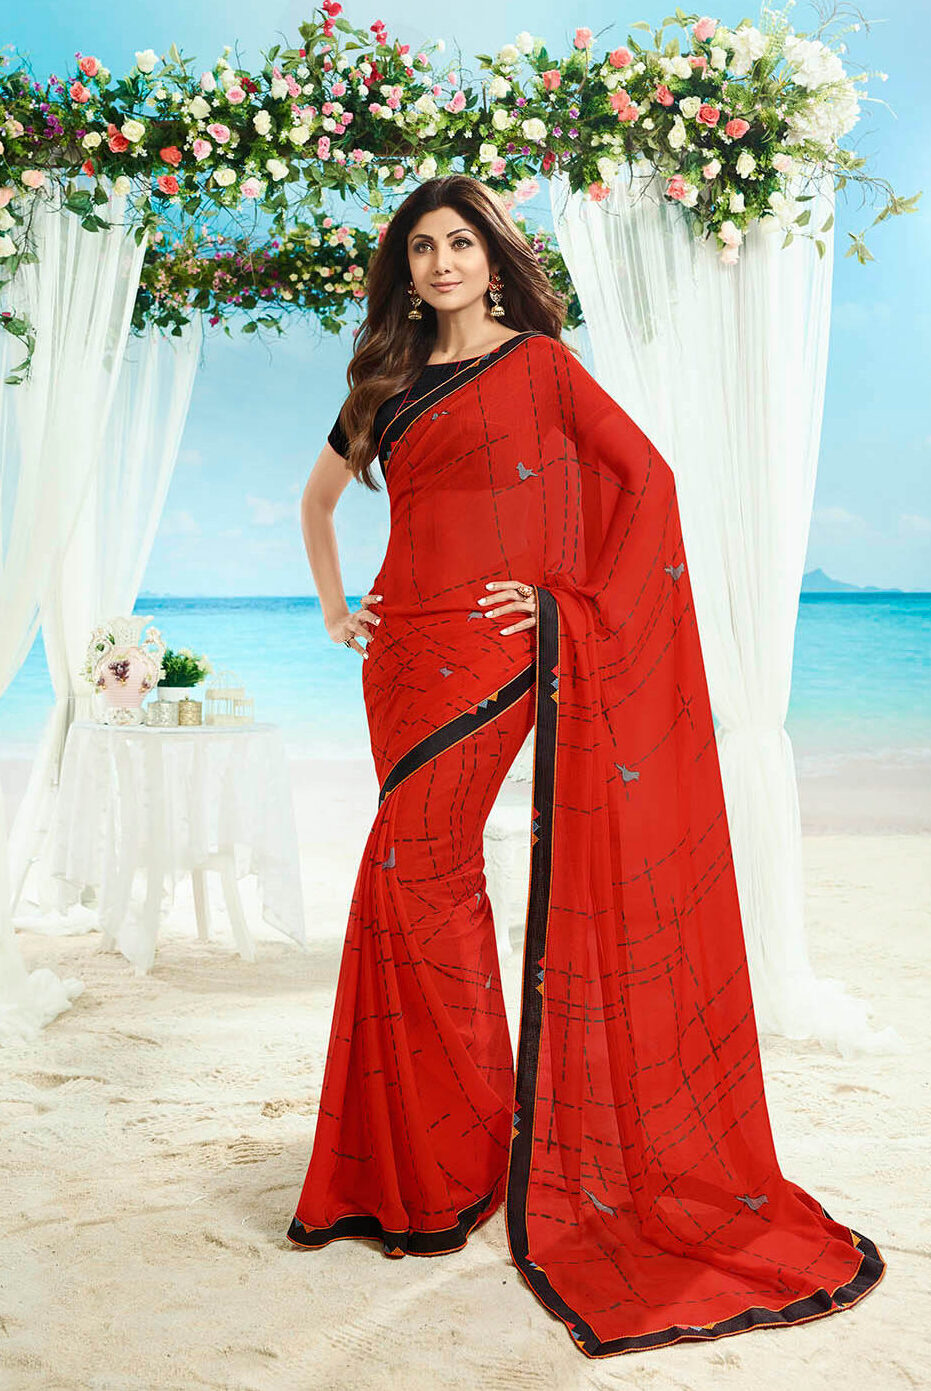 New trend designer red color simple saree with designing blouse.